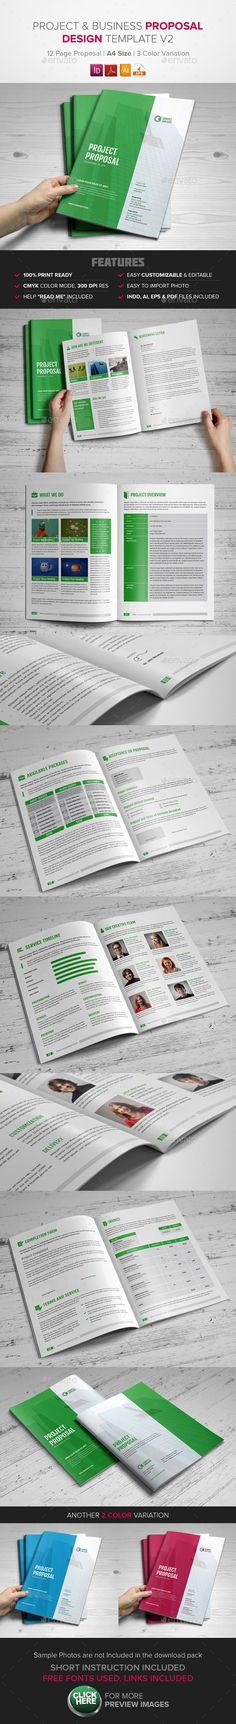 Business Proposal Business proposal, Proposals and Proposal - free business proposal template download